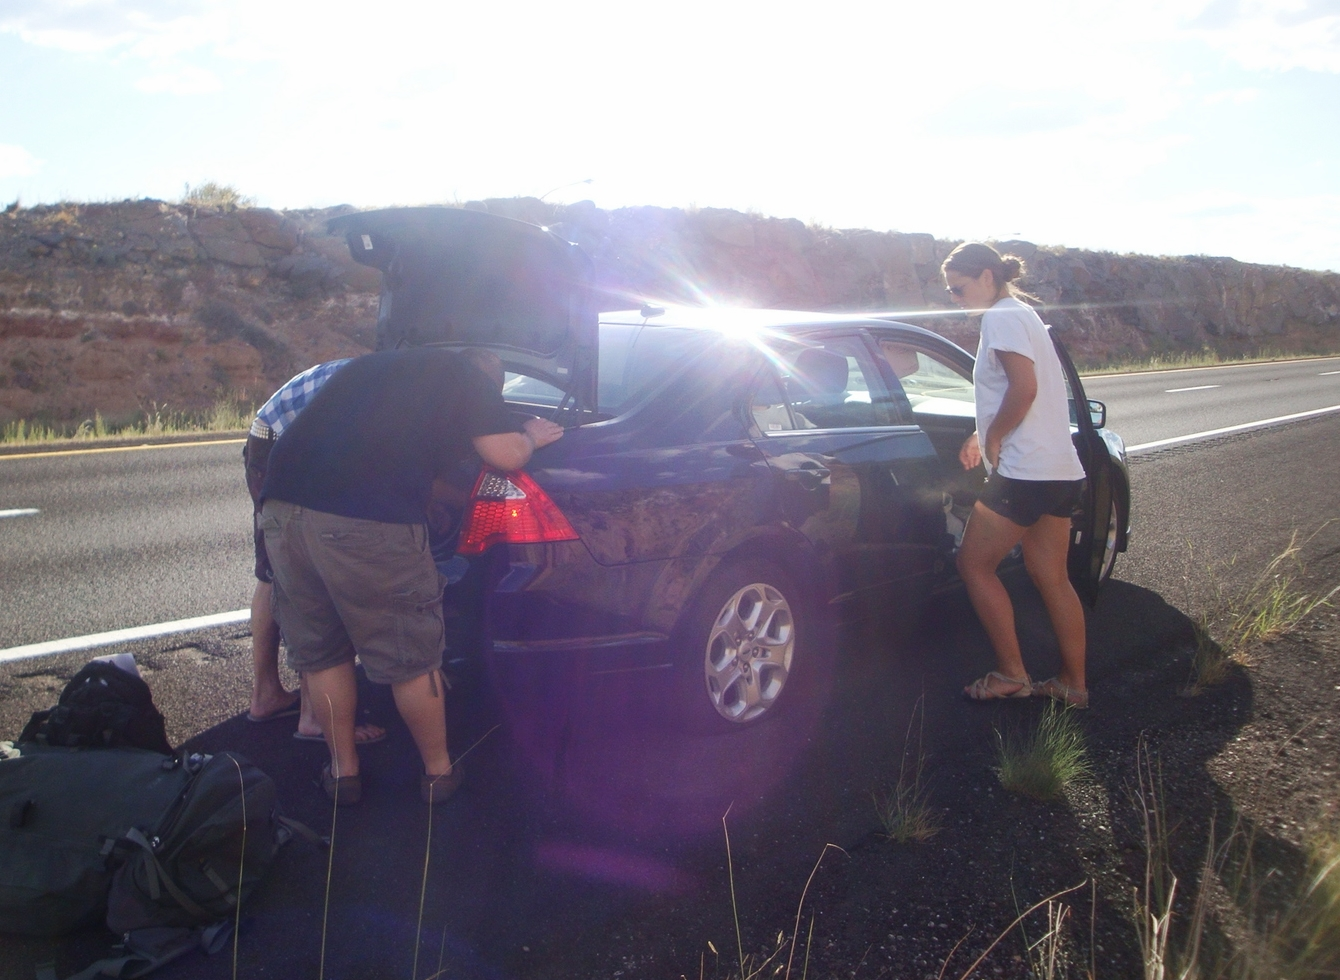 a flat tire is the price of adventure on a CS road trip in Nevada